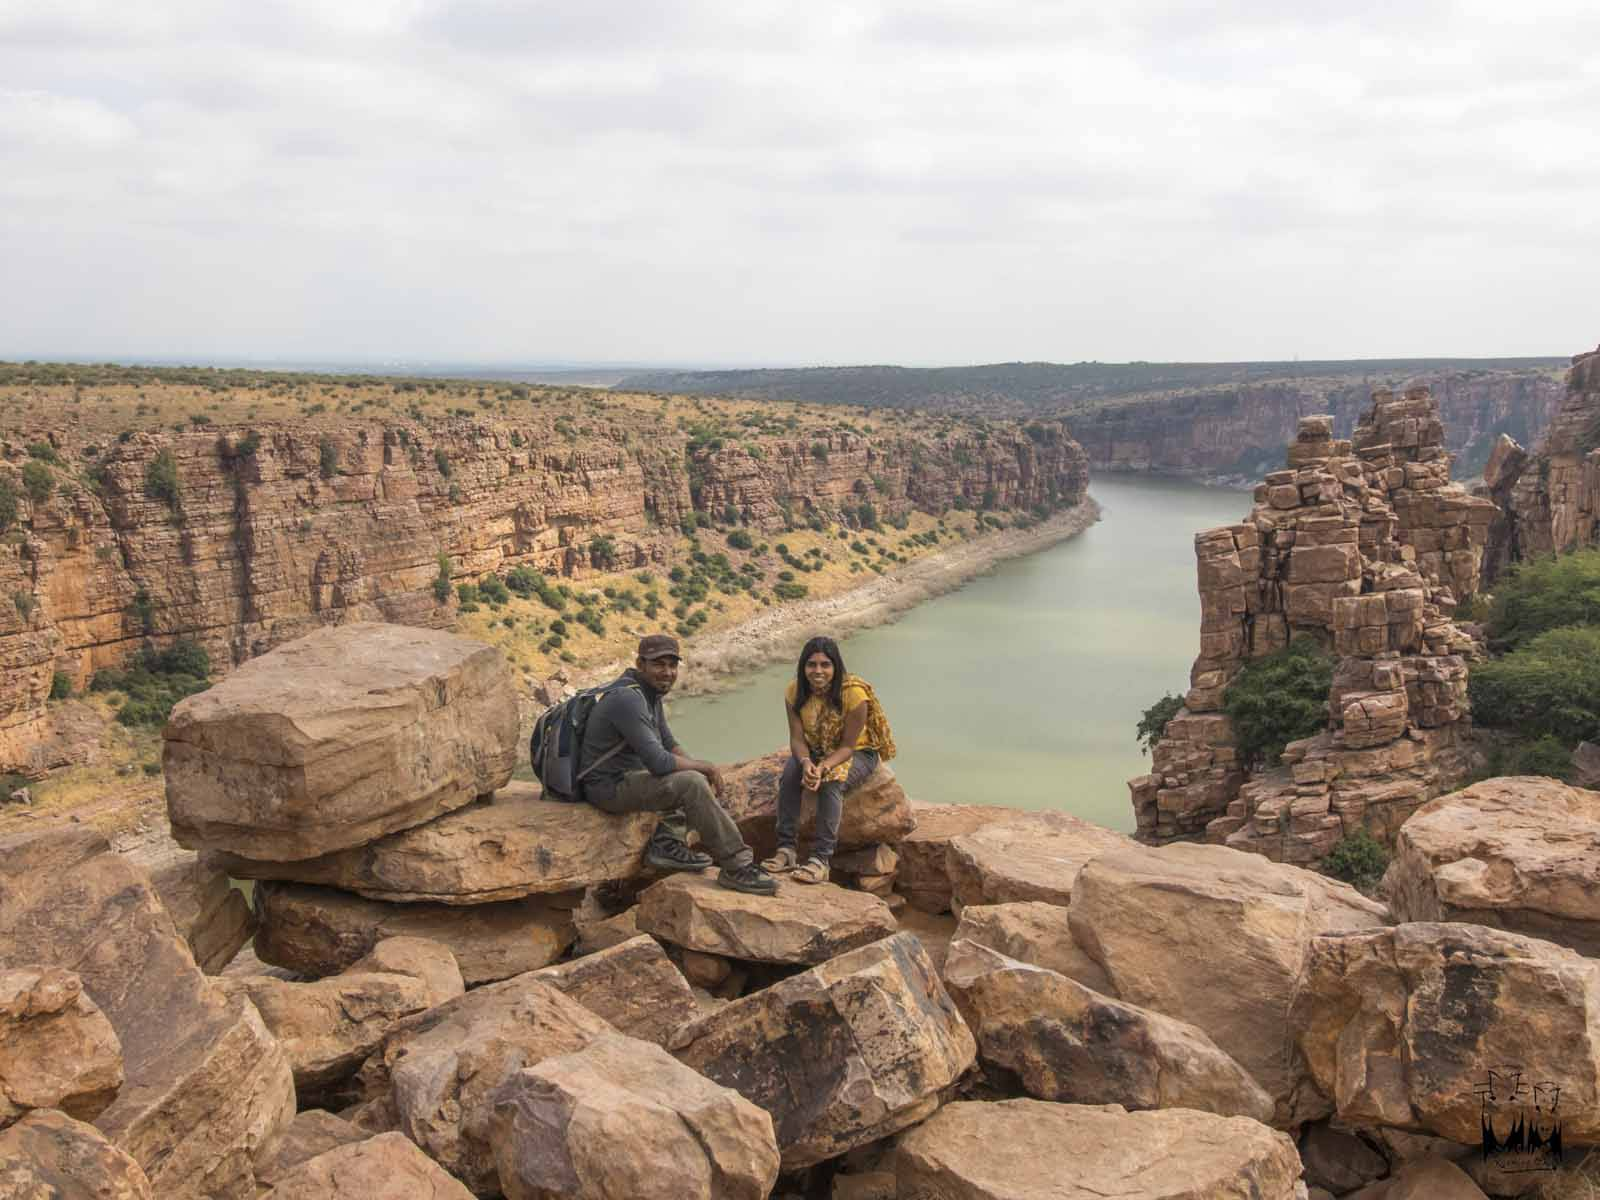 Gandikota – Canyon in the middle of nowhere